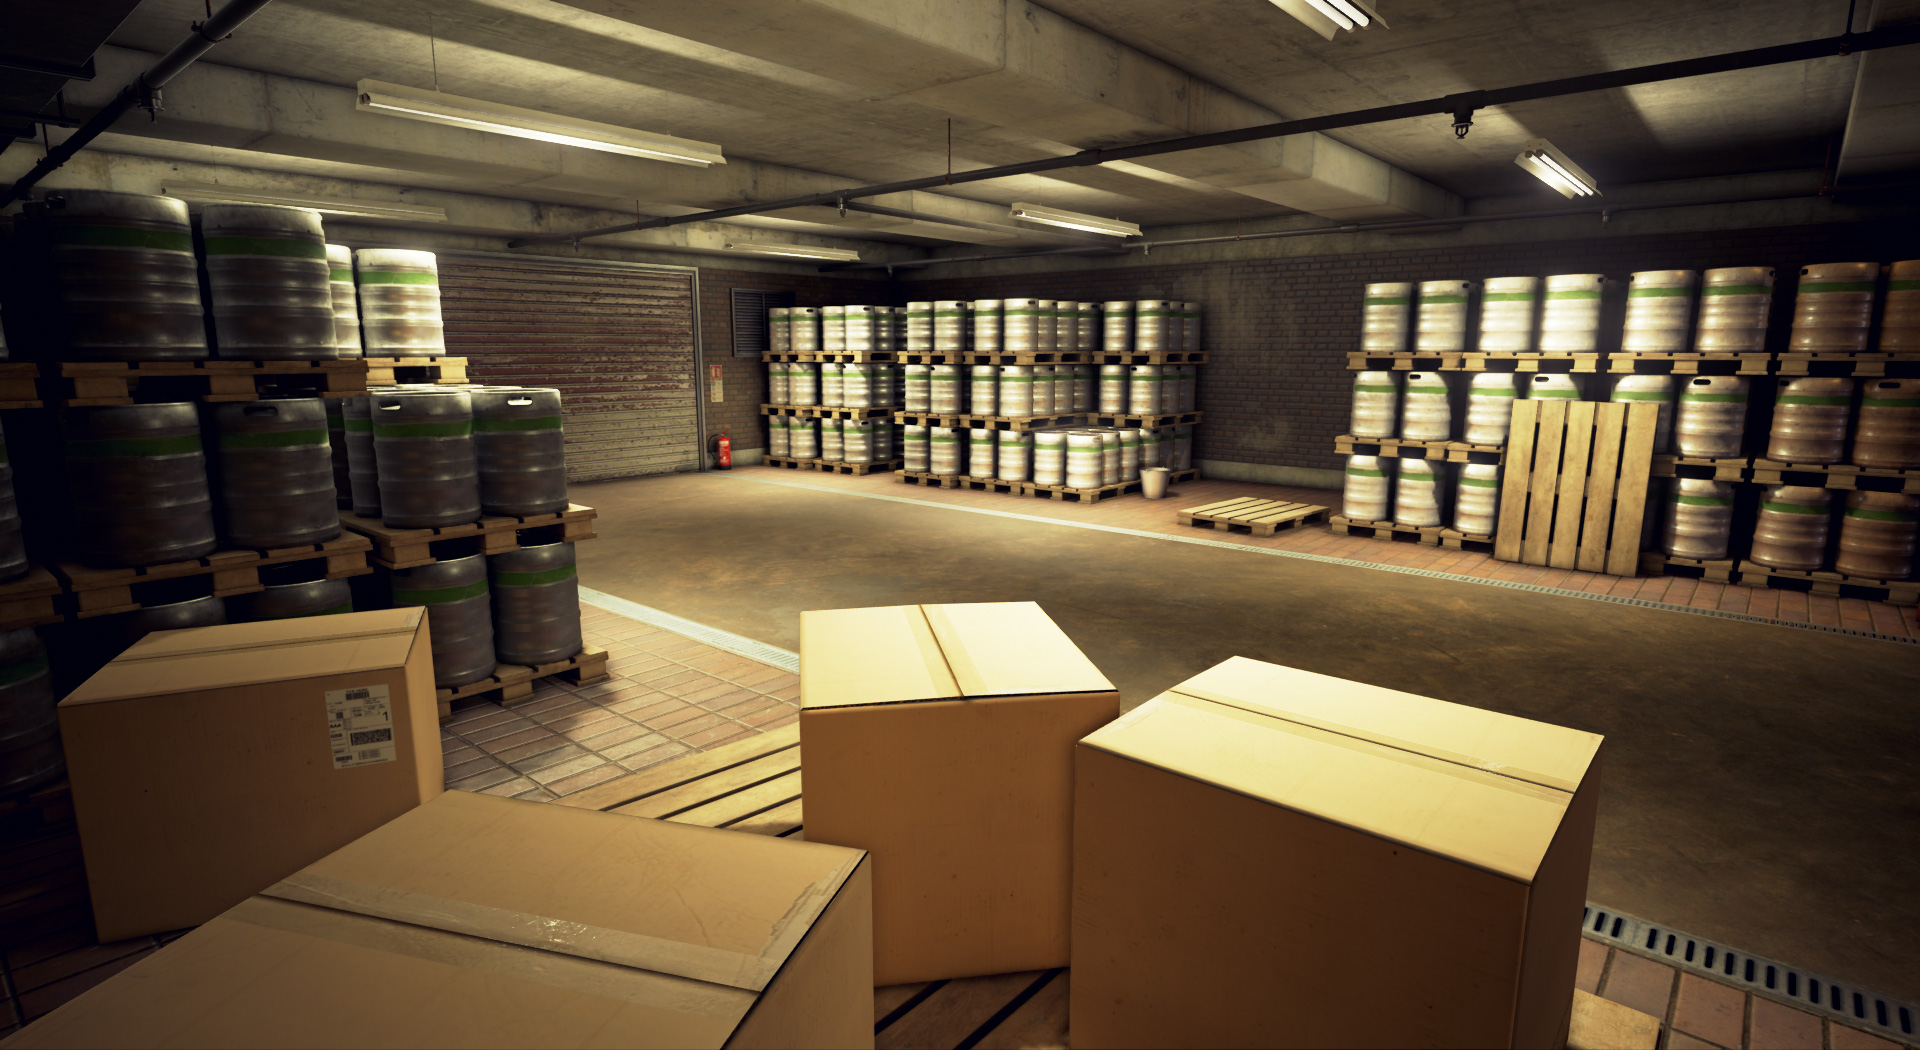 unreal 4 brewery screenshot 05